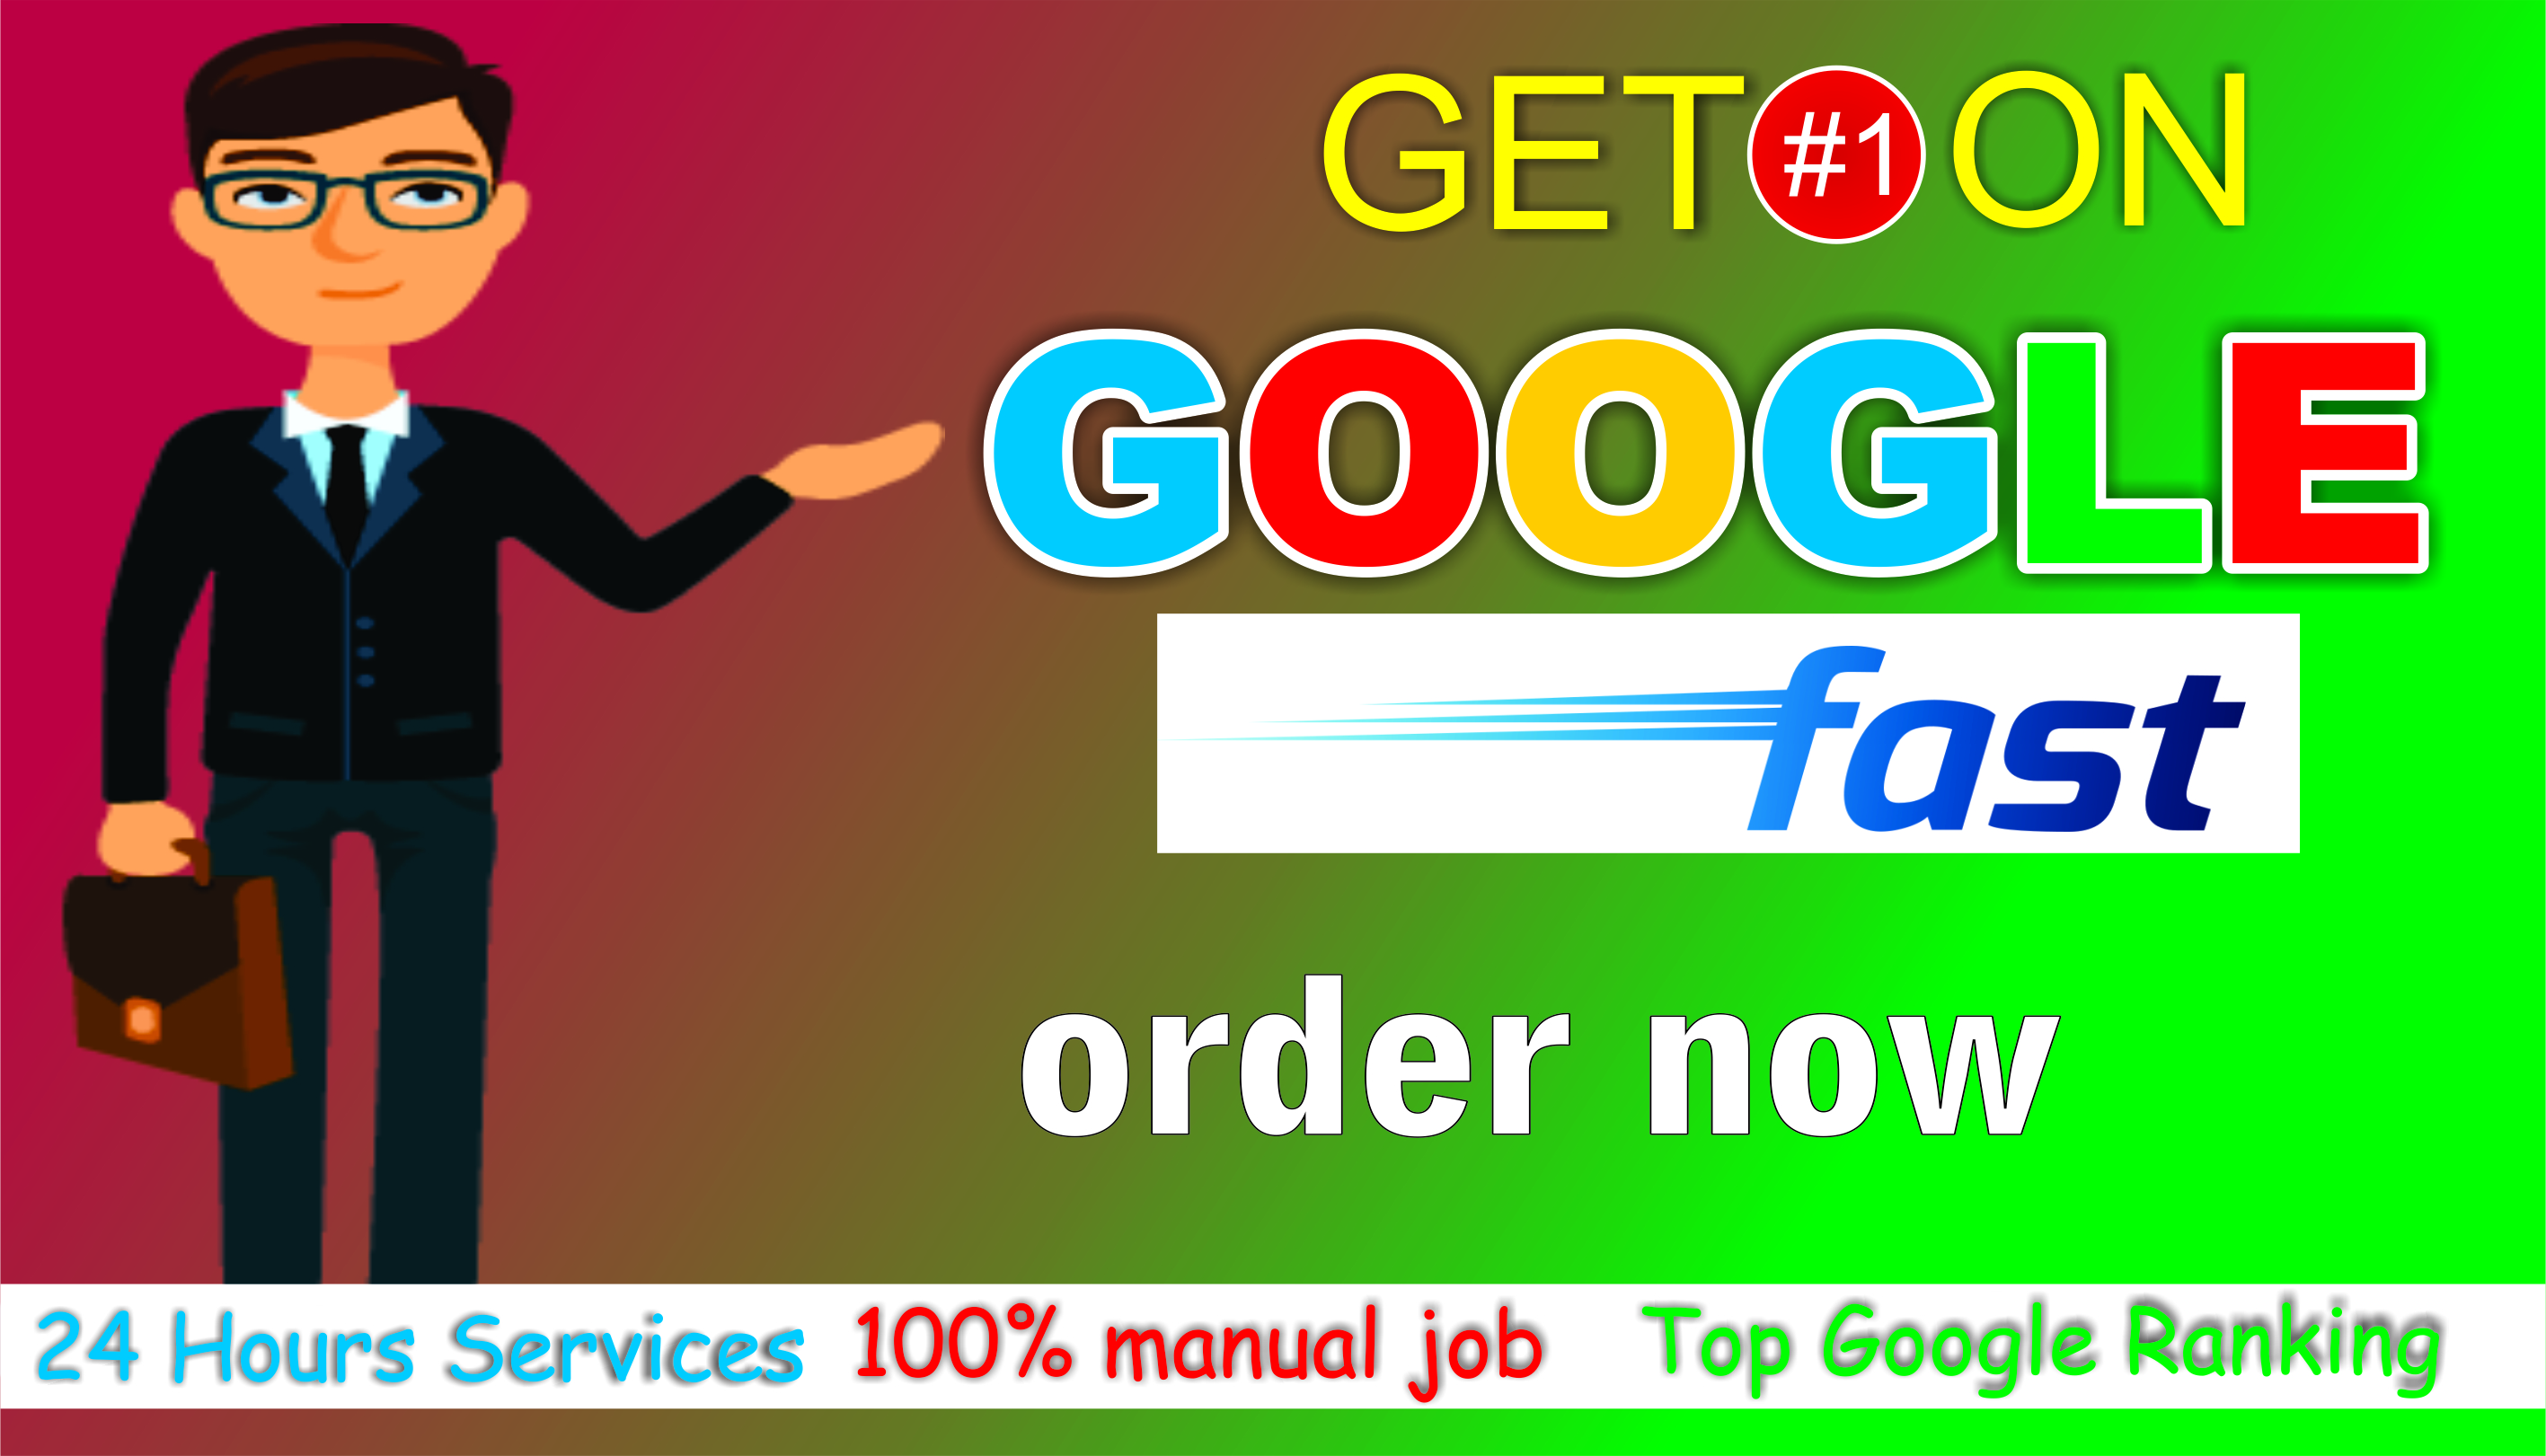 I will build 5000 google map citations to rank your gmb higher